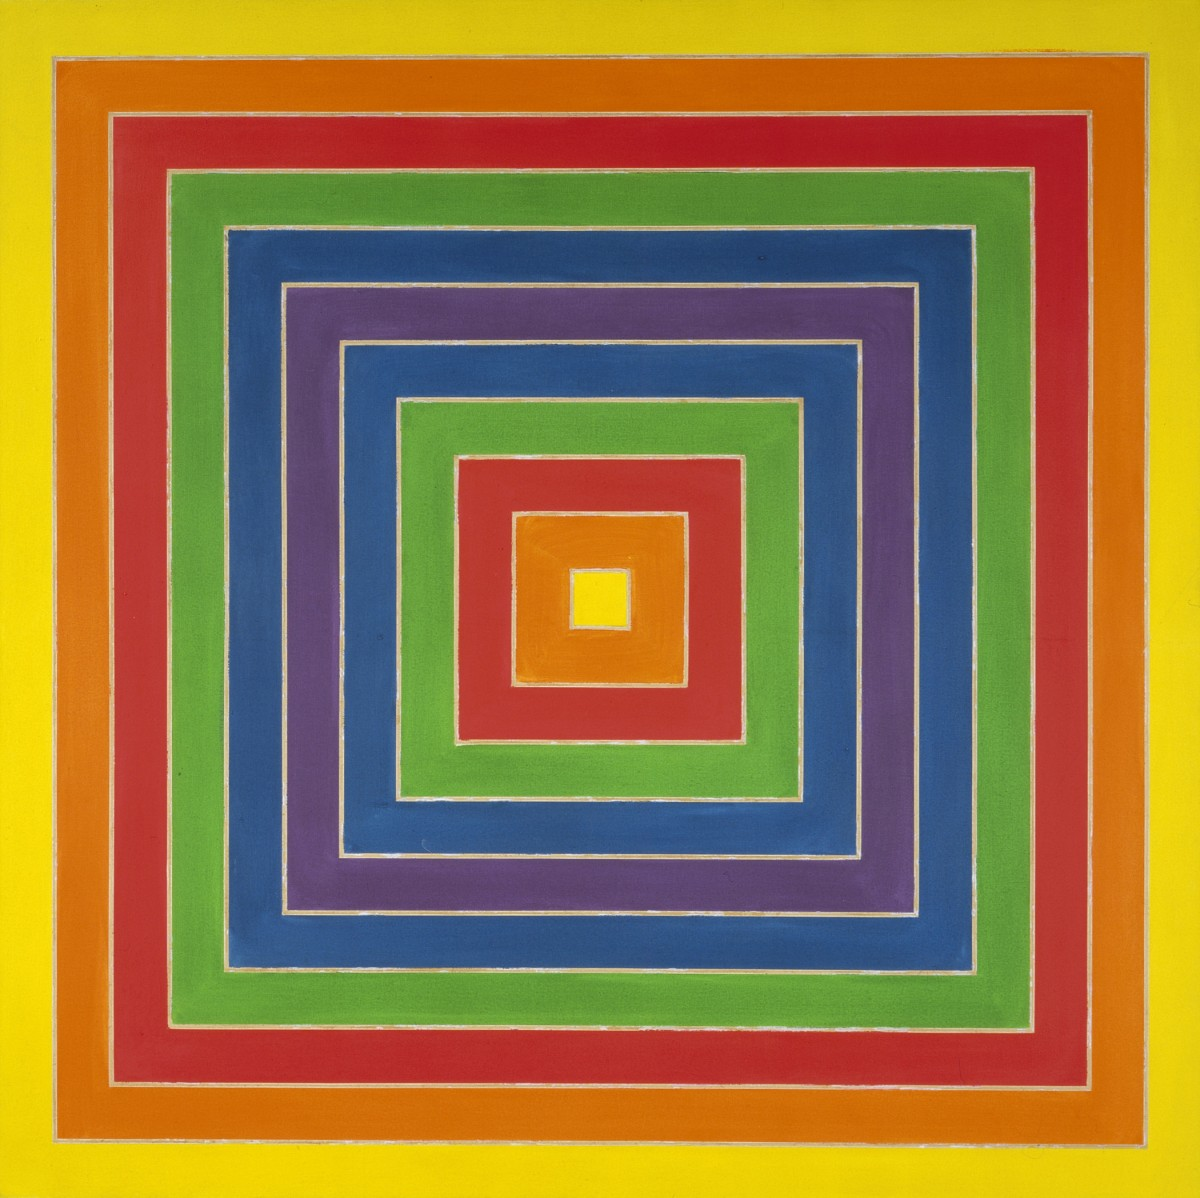 Frank Stella: Selections from the Permanent Collection